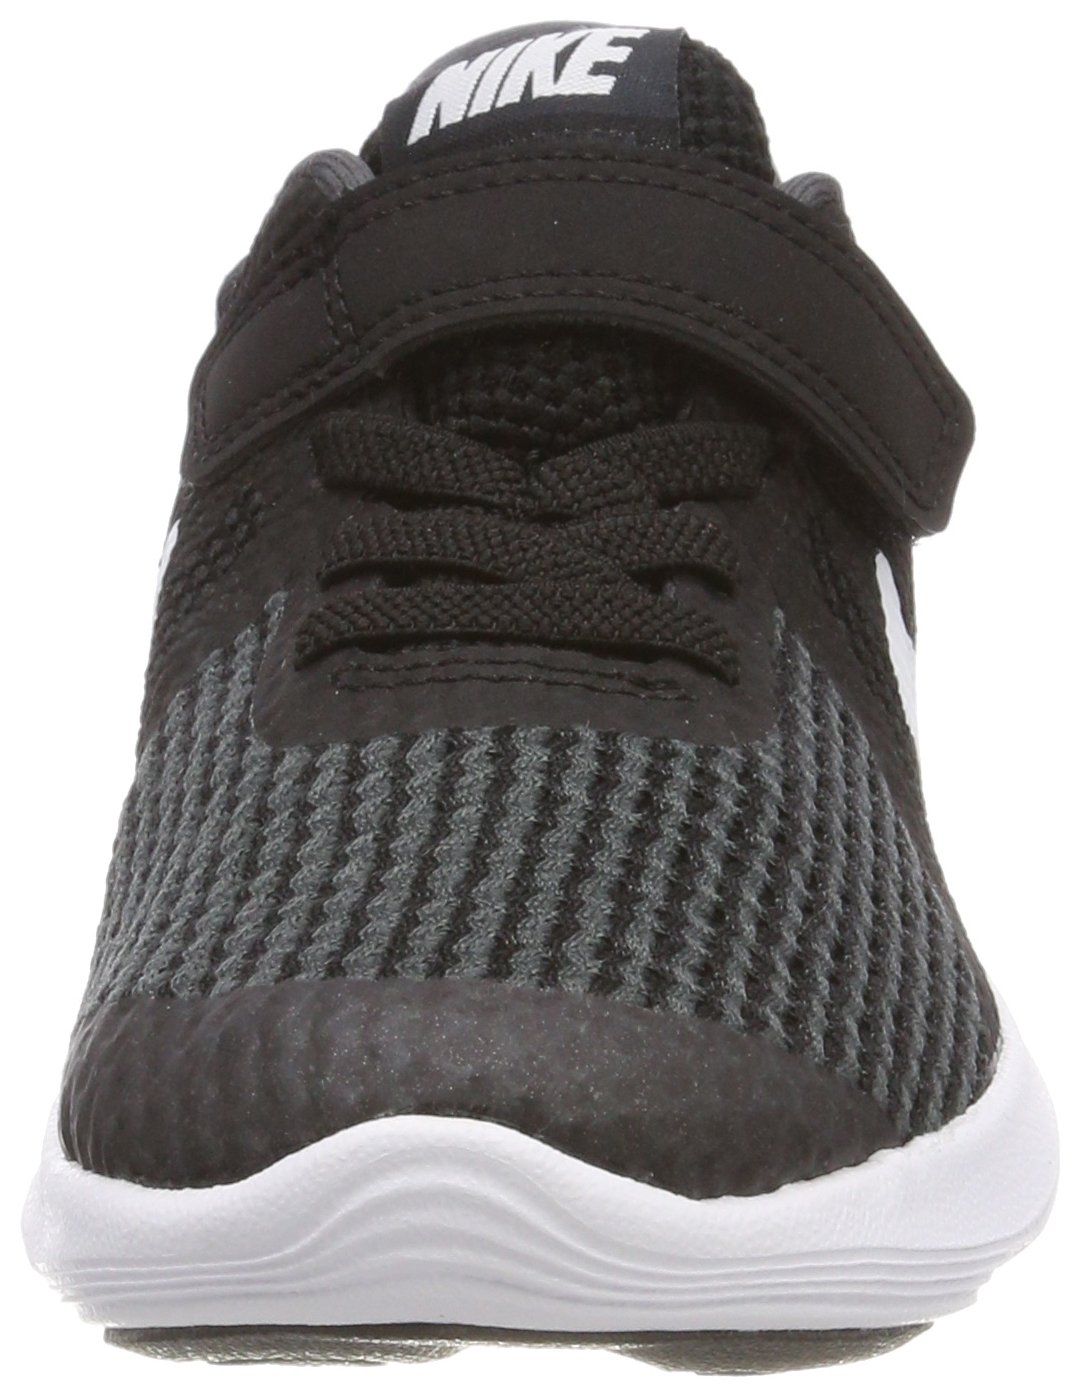 Nike Boys' Revolution 4 (PSV) Running Shoe, Black/White-Anthracite, 10.5C Youth US Little Kid by Nike (Image #4)